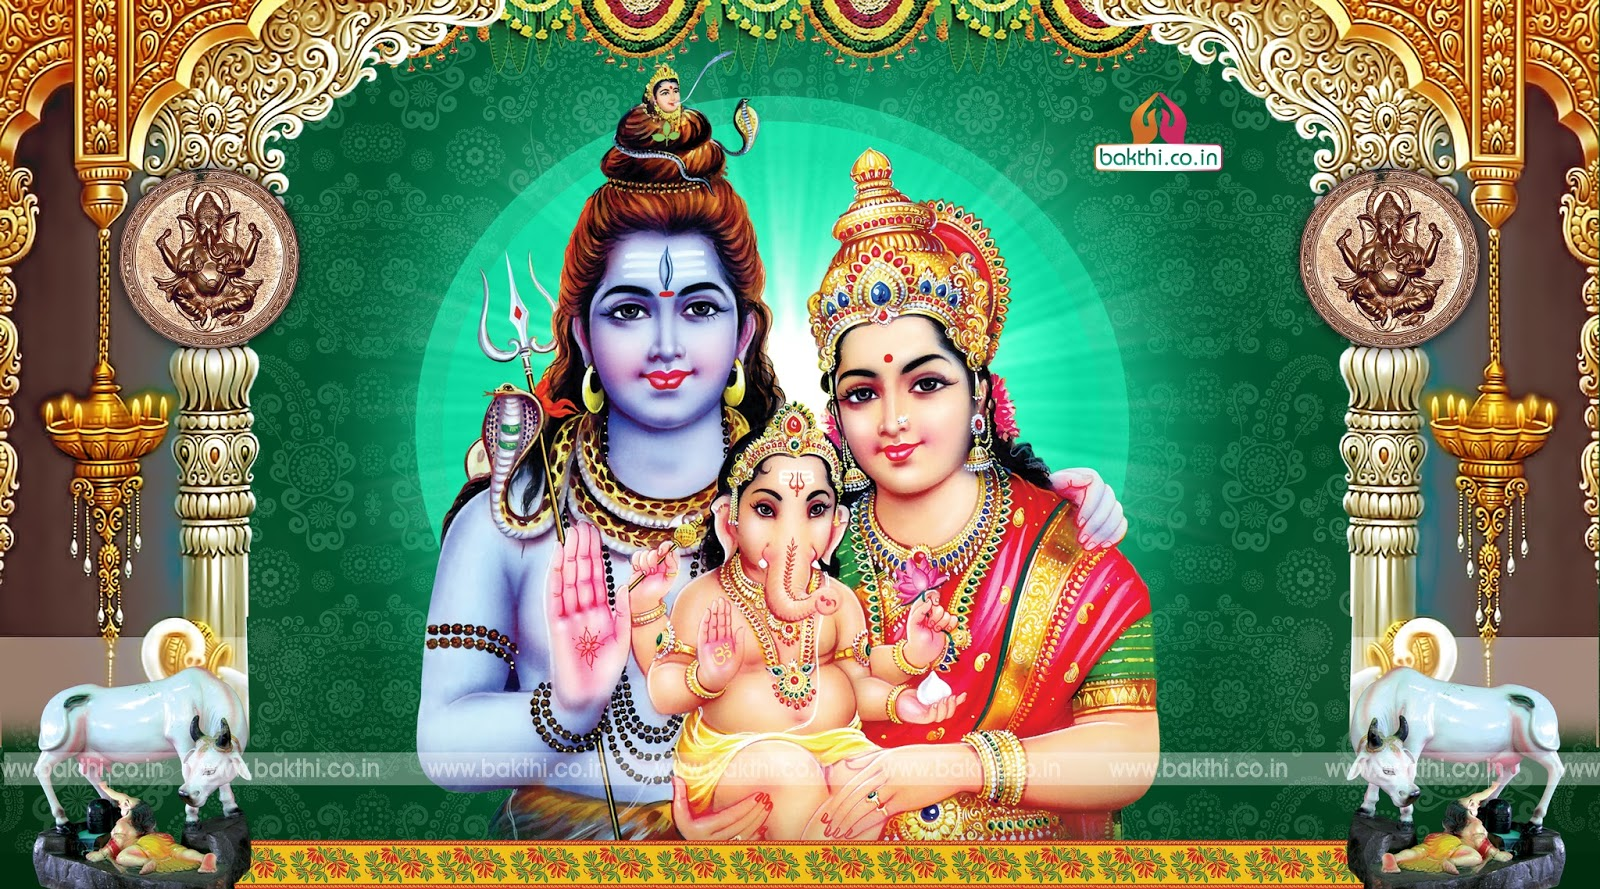 Lord Shiva Parvathi Hd Images Free Downloads Bakthicoin Devotional